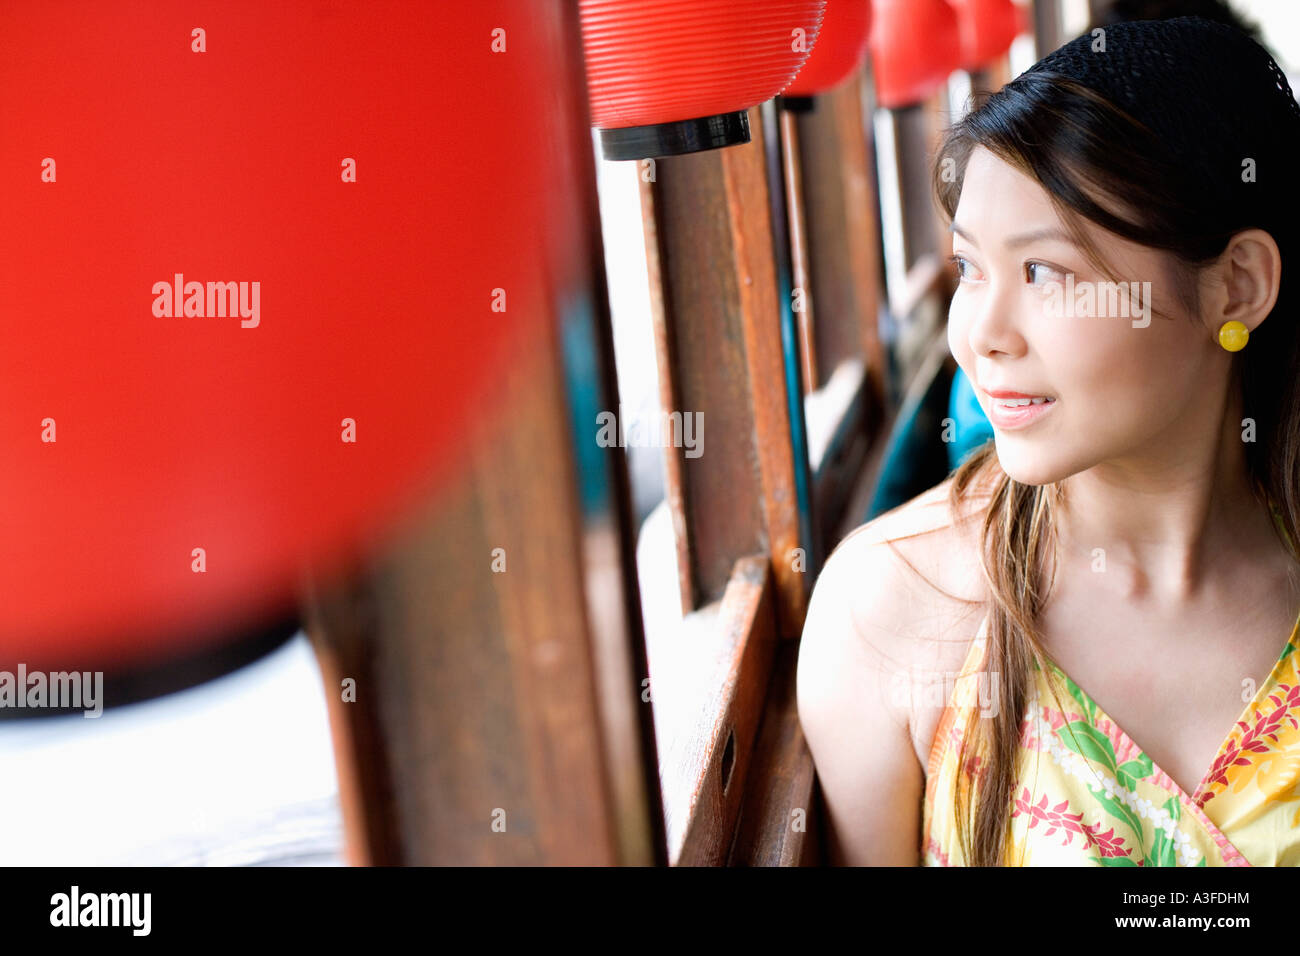 Close-up of a young woman looking out the window of a tourboat Stock Photo